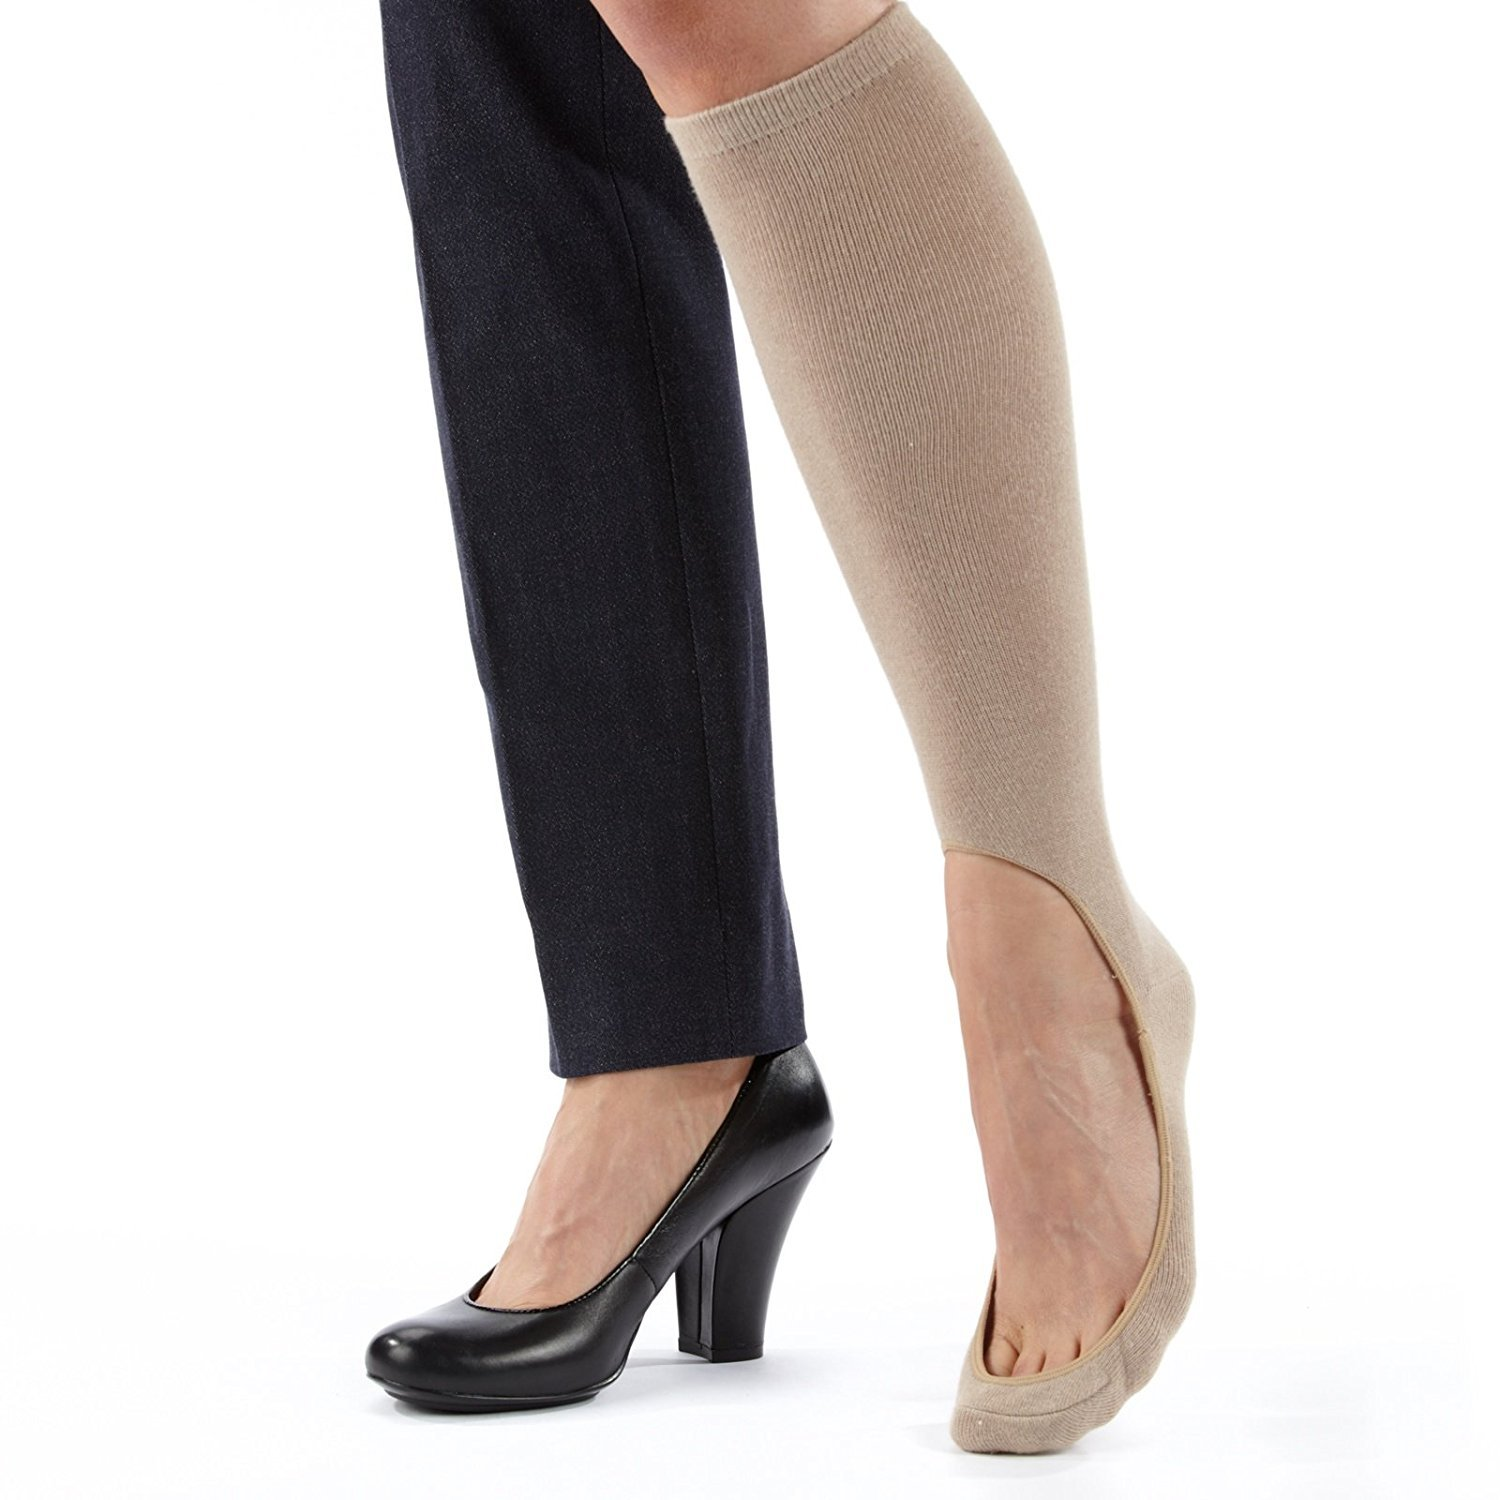 No Show Sock 2 pair (One Black & One Nude)